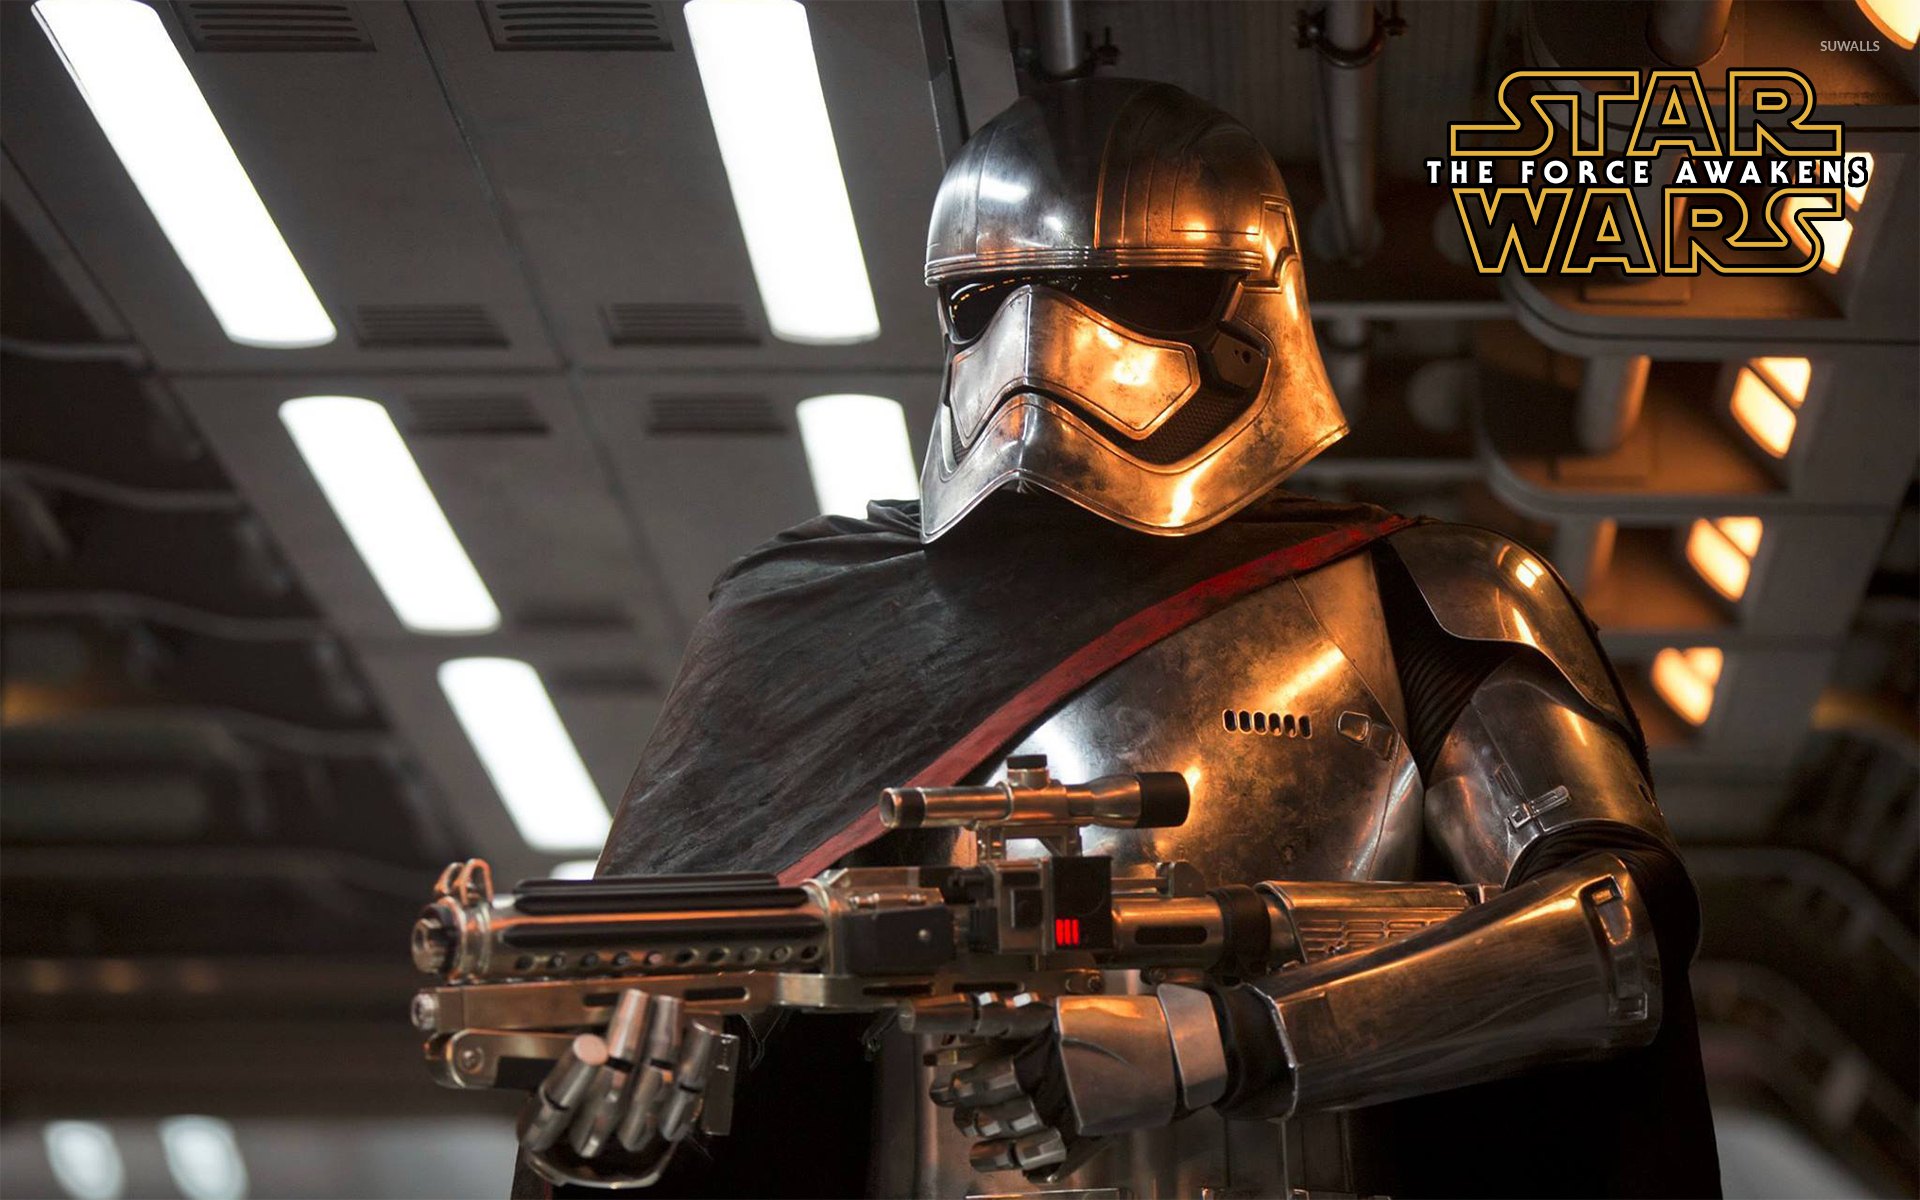 Captain Phasma In Star Wars The Force Awakens Wallpaper Movie Wallpapers 51507